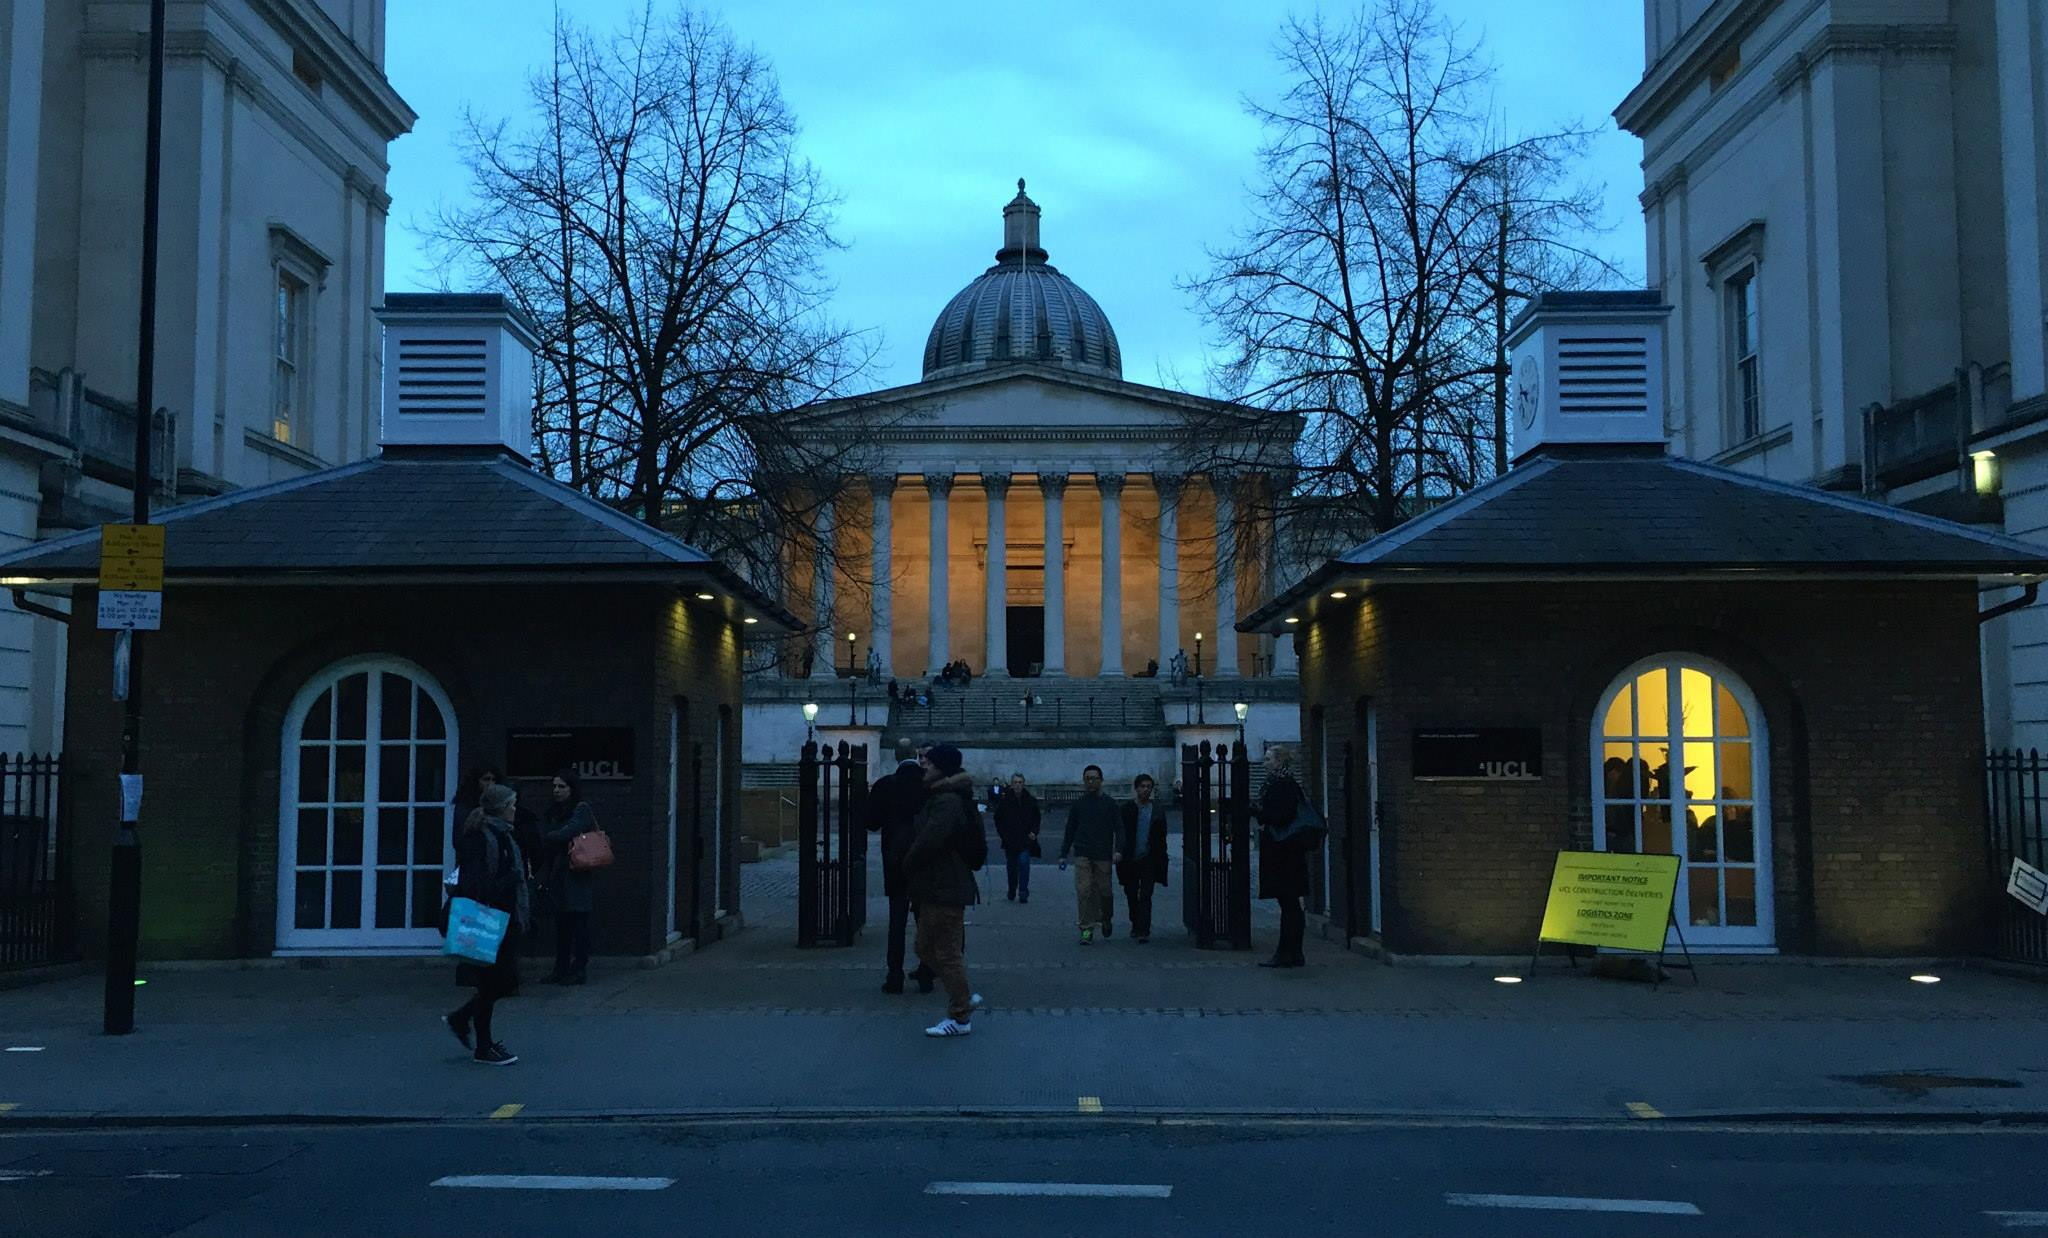 The school that I studied abroad at: University College London